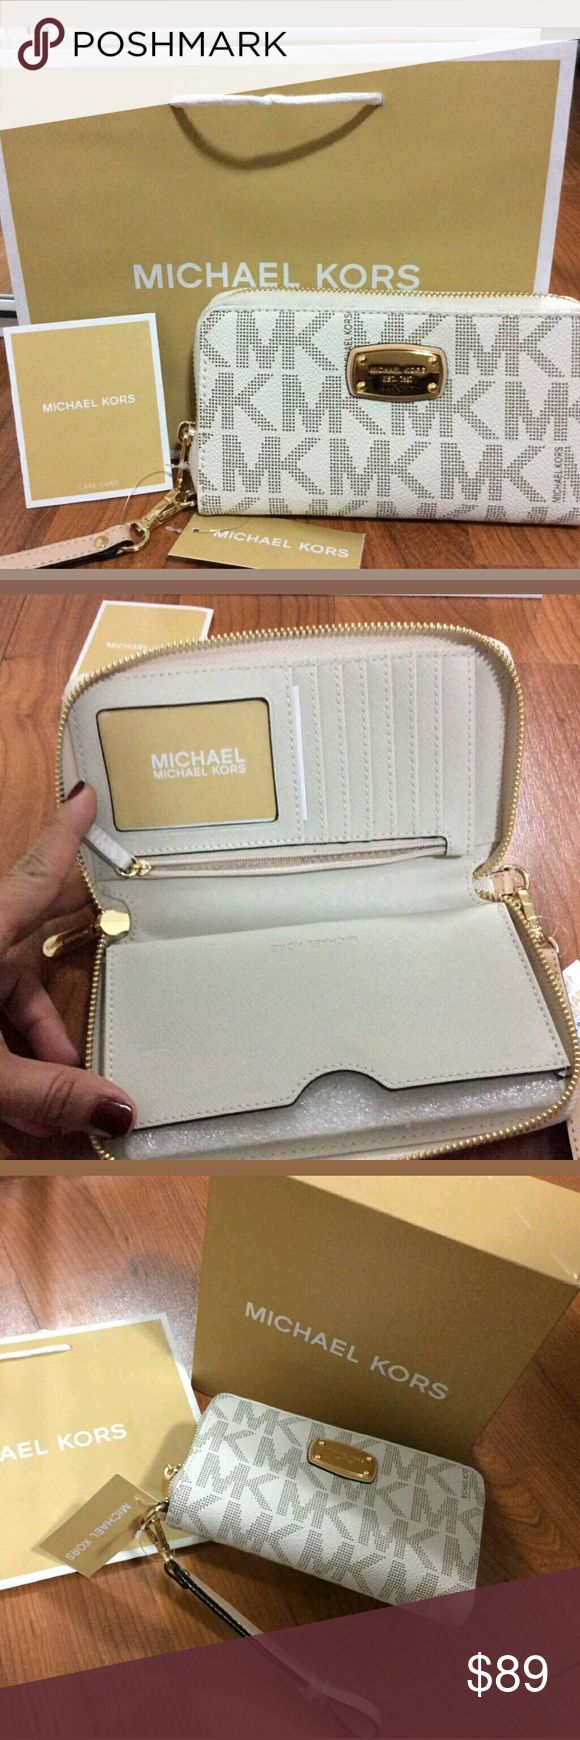 Michael kors $145 wallet AUTHENTIC id card phone New with tag and shopping bag Michael Kors Bags Wallets